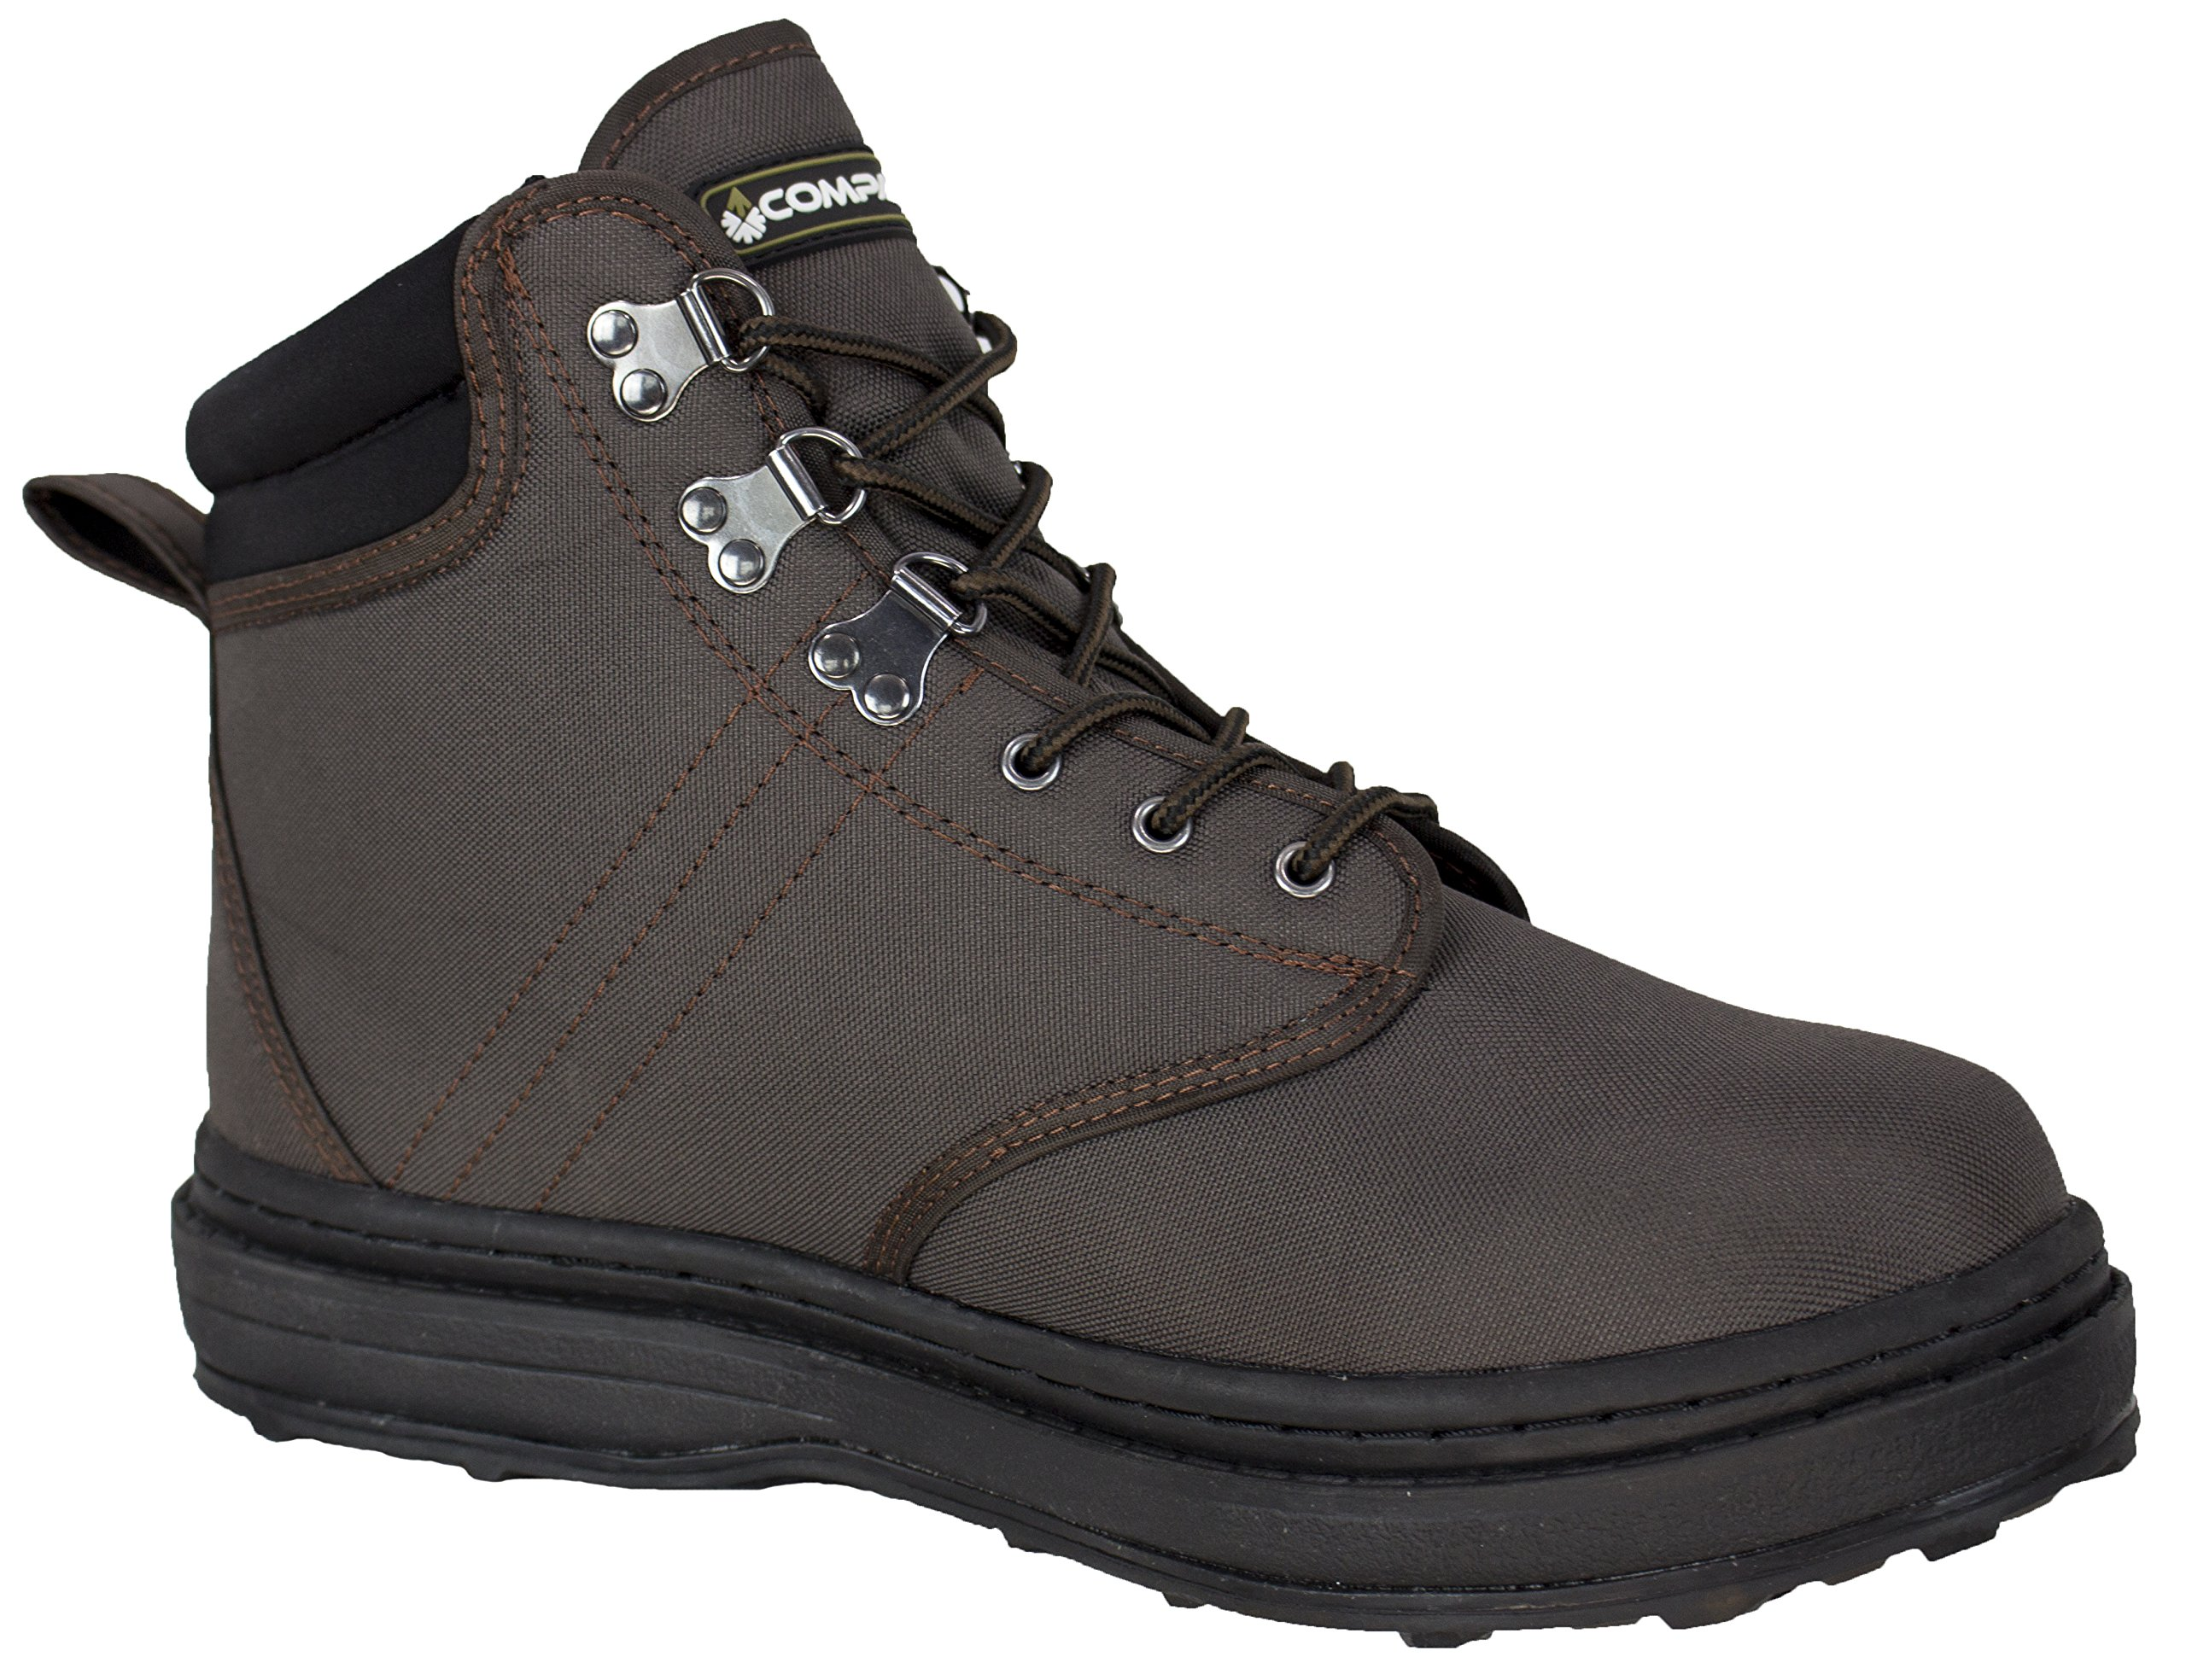 95480-PE Compass 360 Stillwater II Cleated Sole Wading Shoes, Size 7